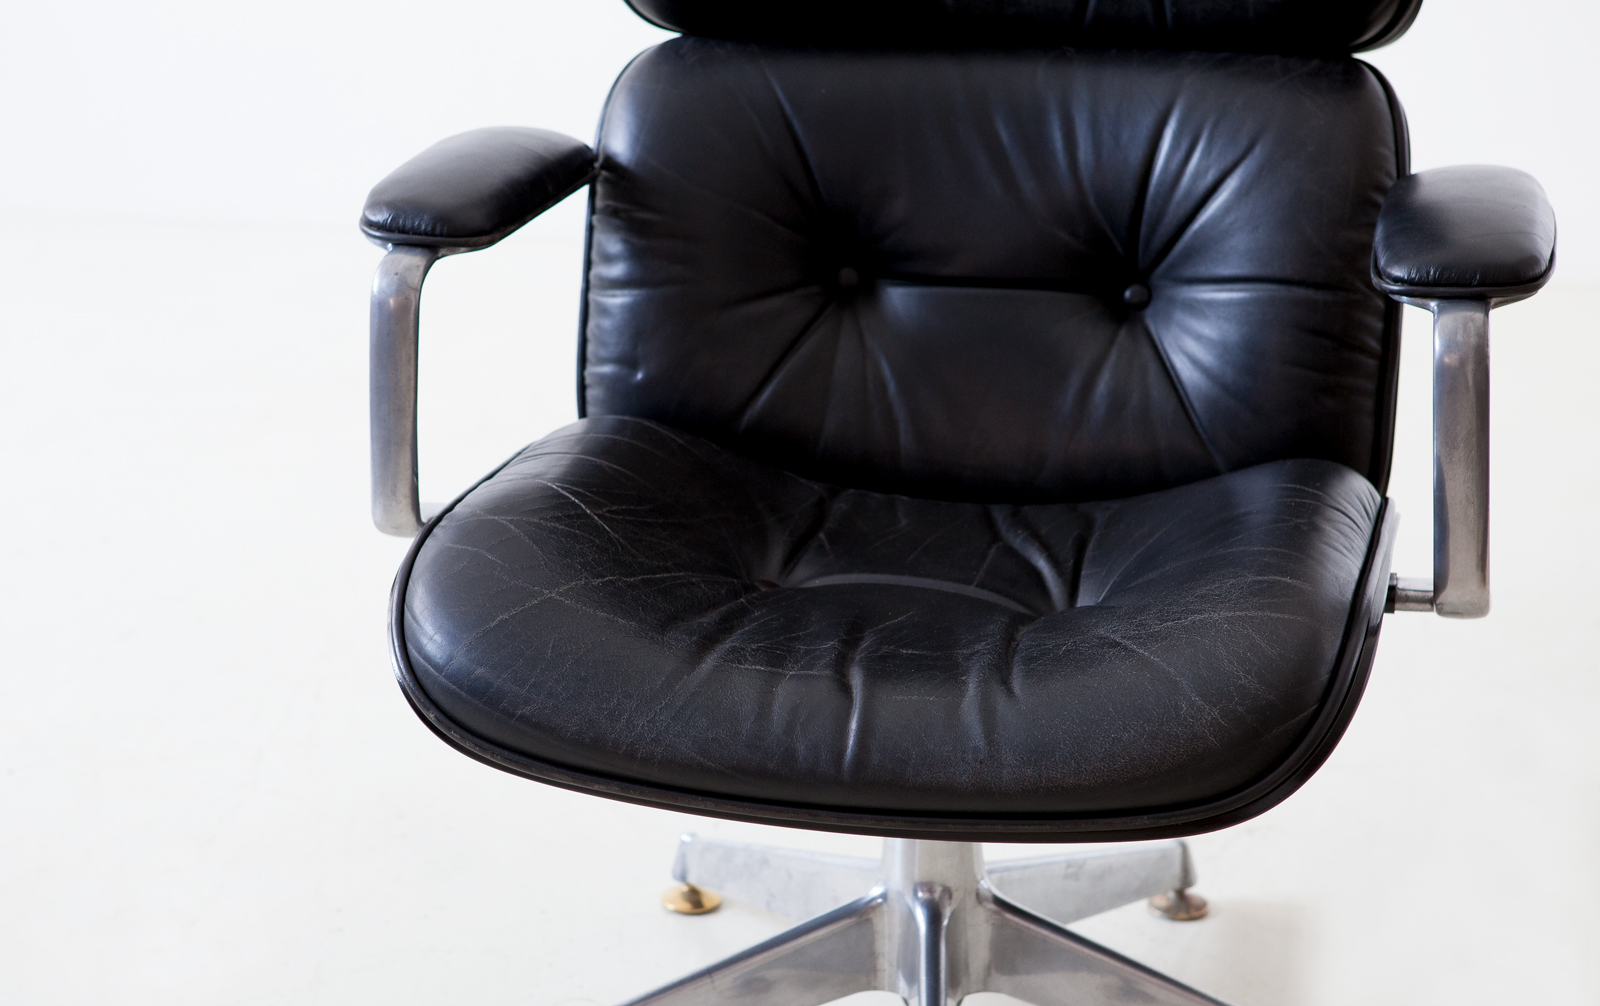 1950s-executive-desk-chair-by-Ico-Parisi-for-M.i.M.-7-SE332